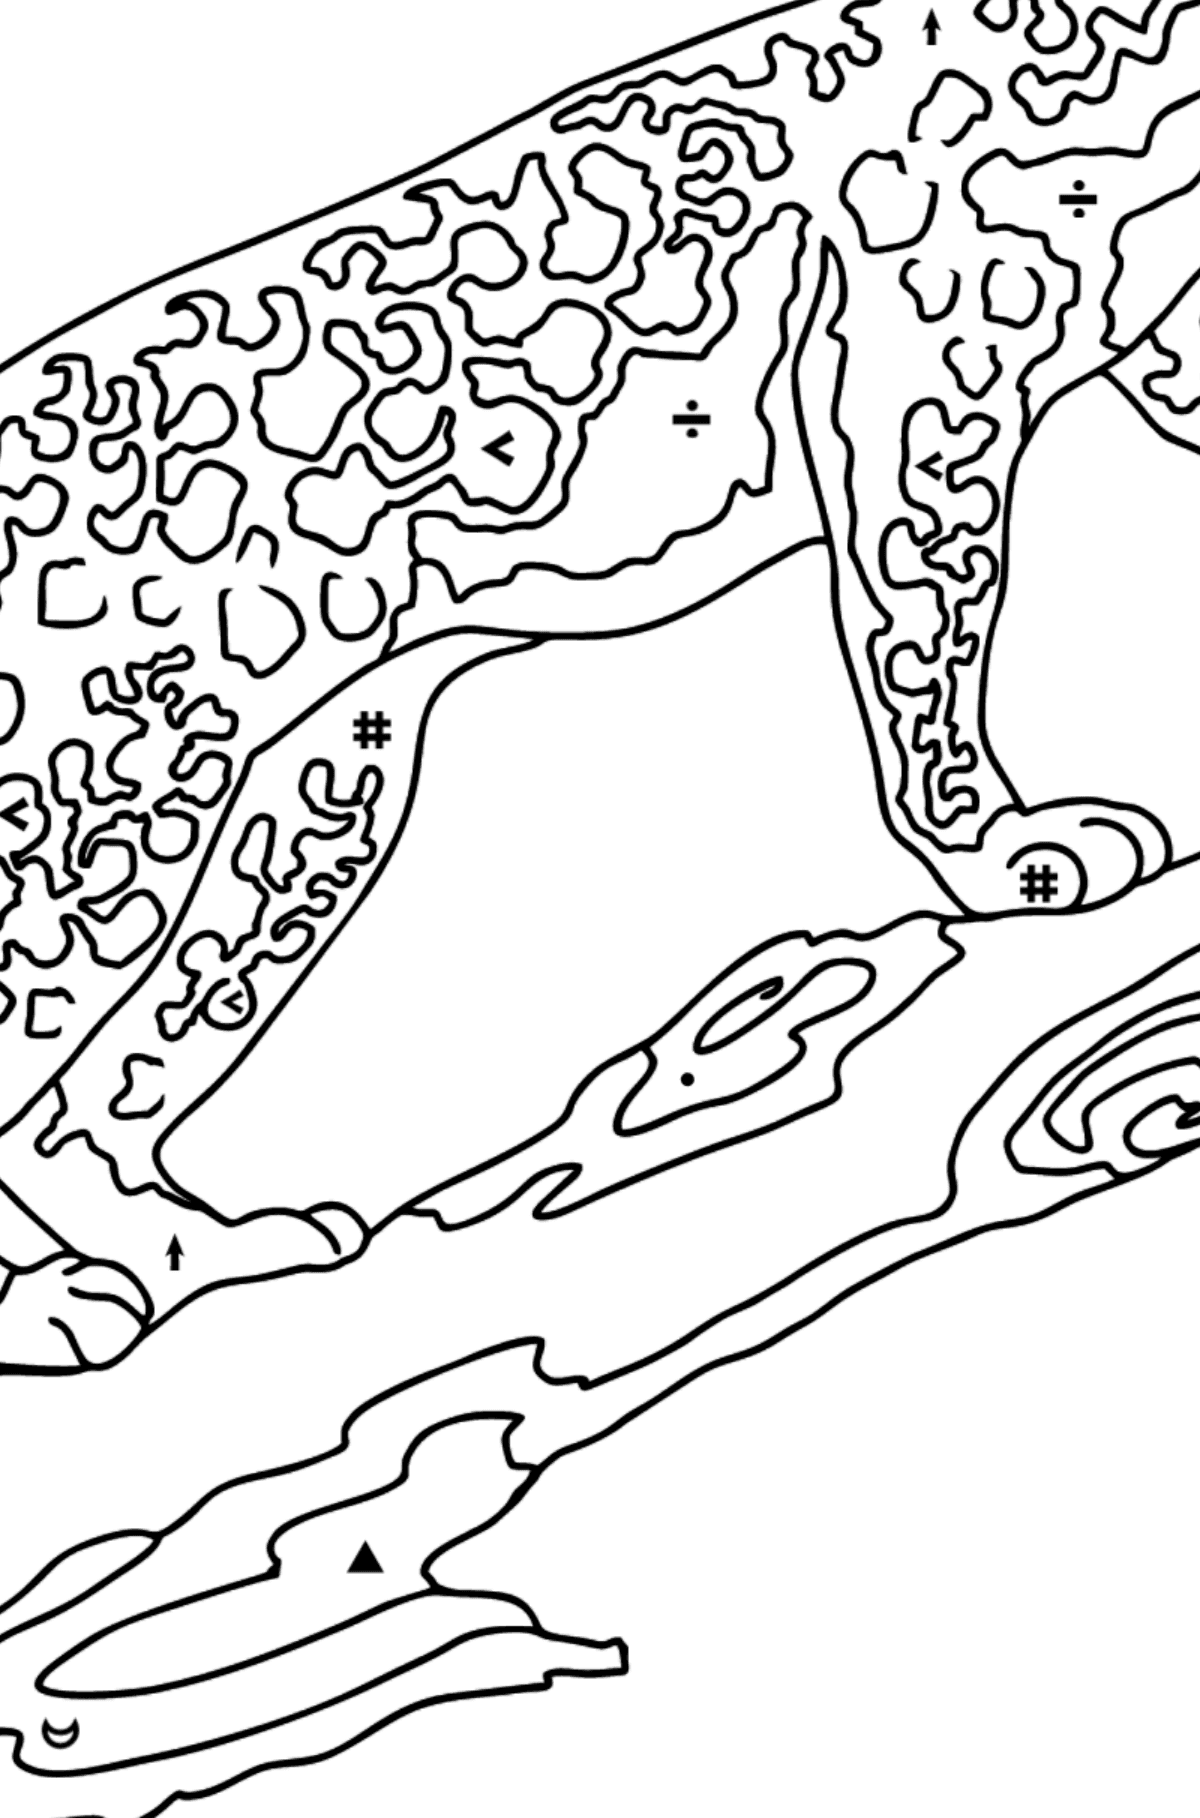 Coloring Page - A Leopard on a Branch - Coloring by Symbols for Kids